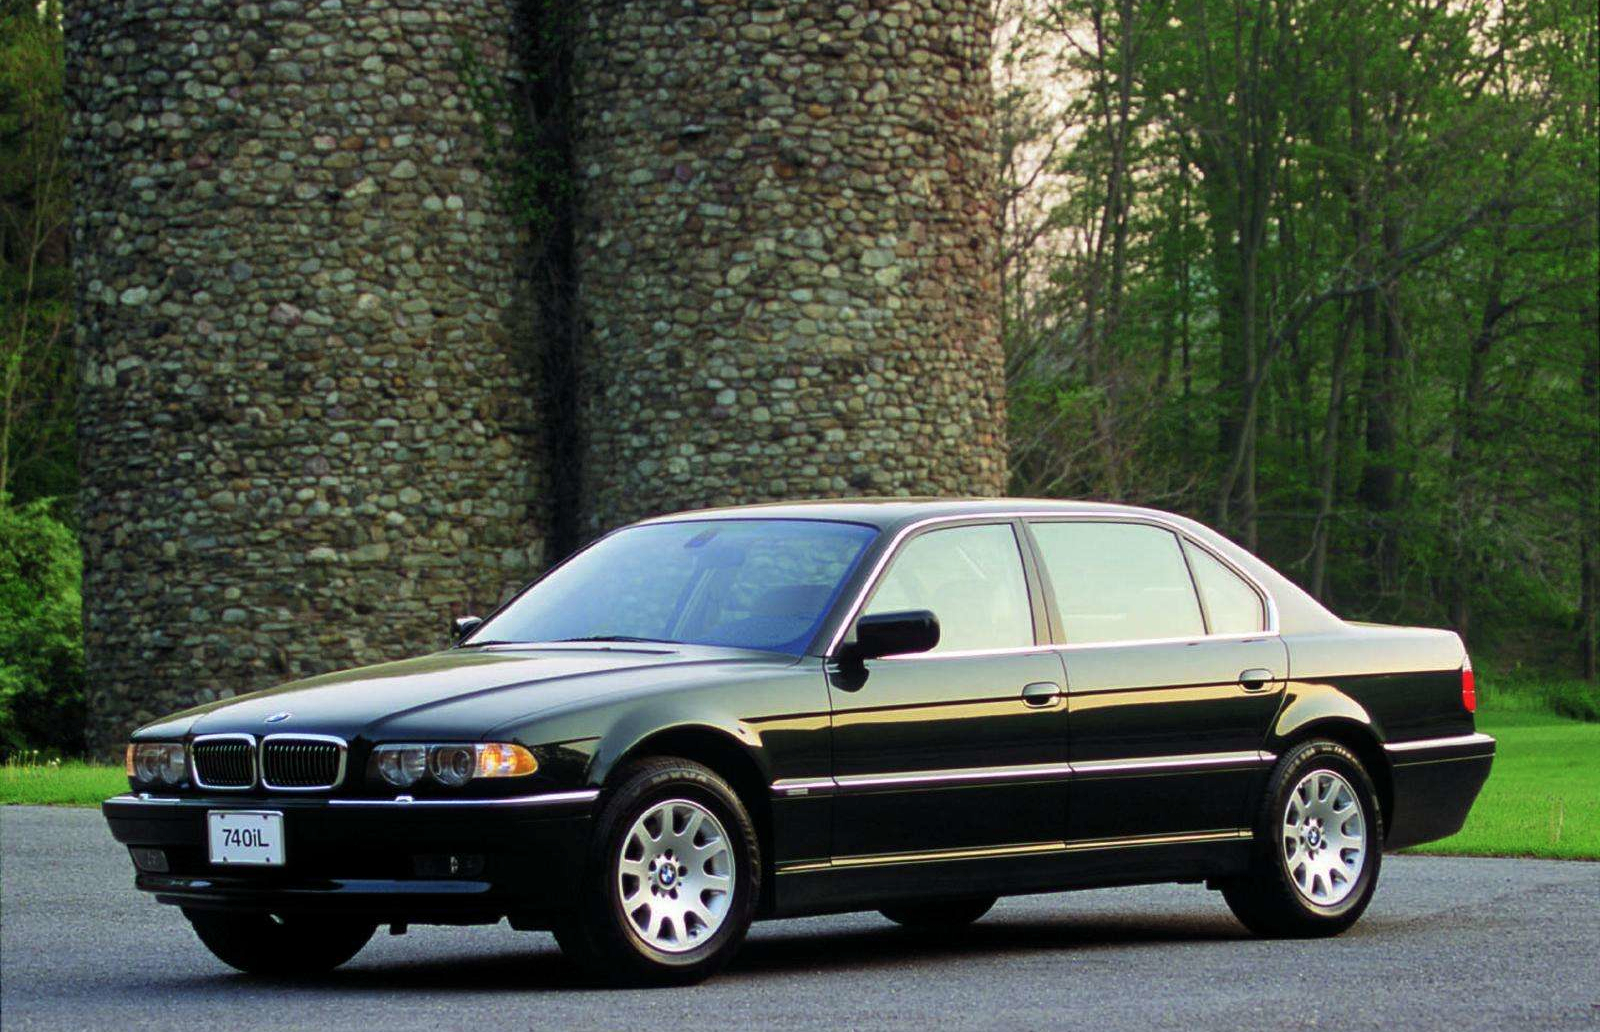 What To Look For When Buying A BMW E38 7 Series